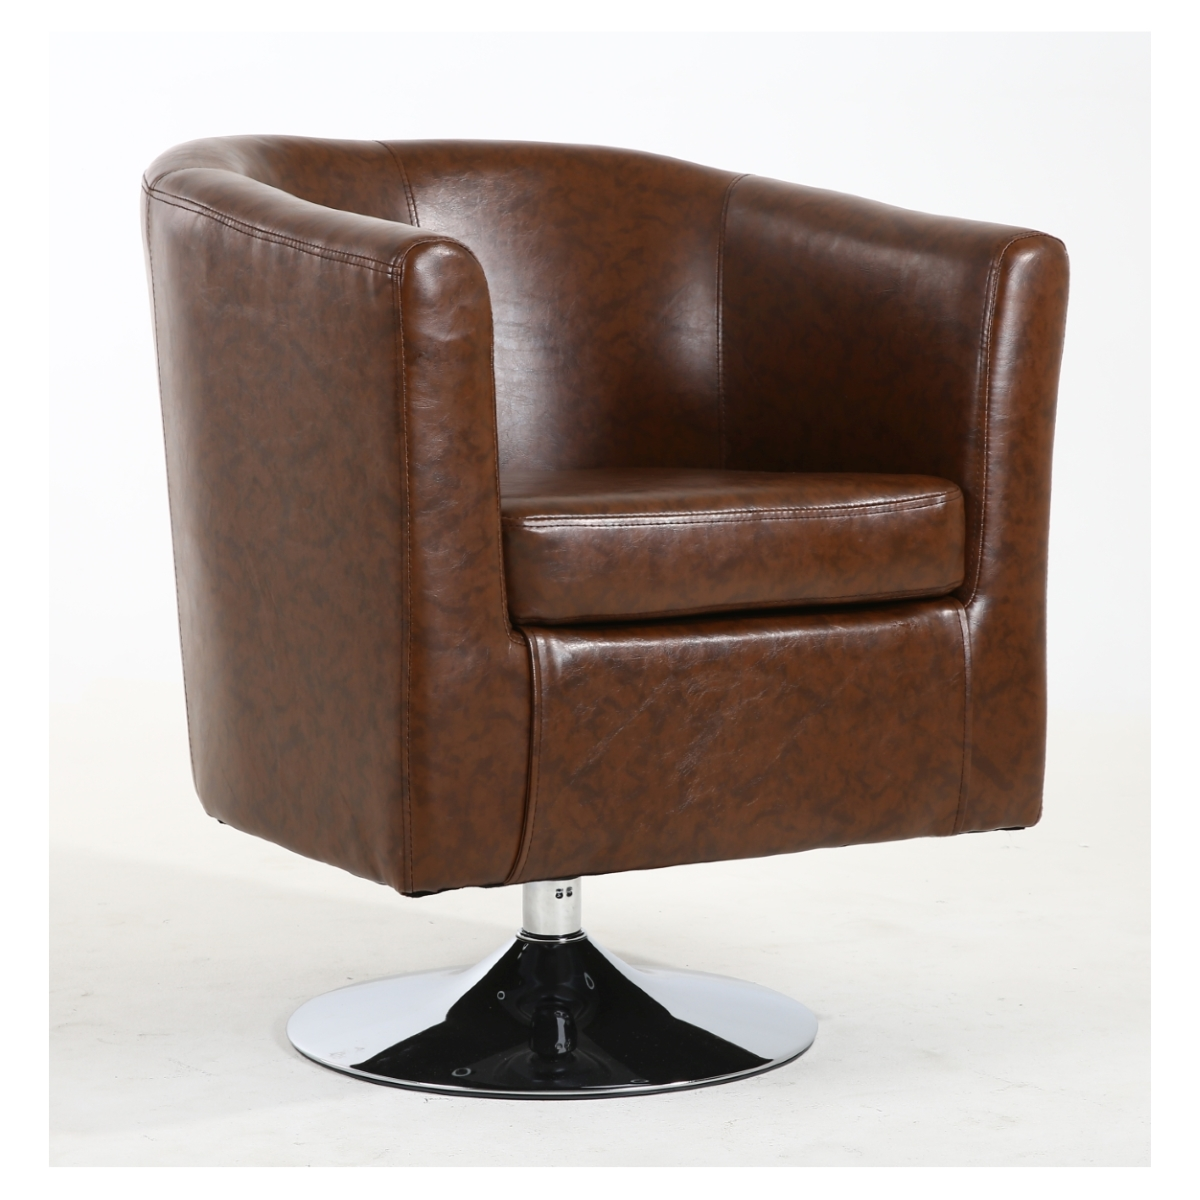 Ordinaire Tub Chairs   Shankar Swivel Base Tub Chair In Antique Brown Leather